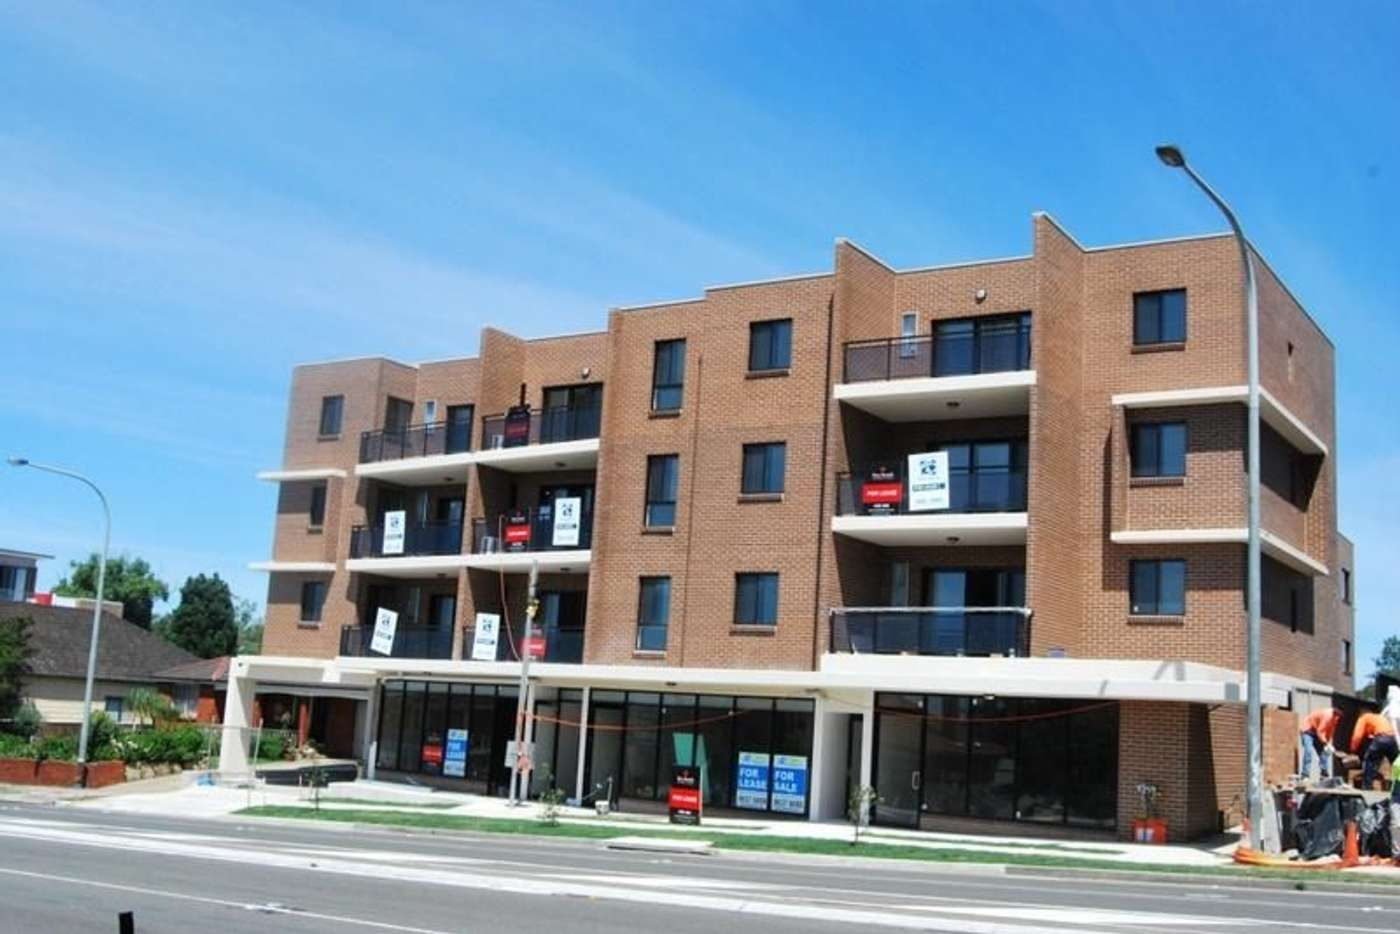 Main view of Homely apartment listing, 14/134-136 Woodville Road, Merrylands NSW 2160